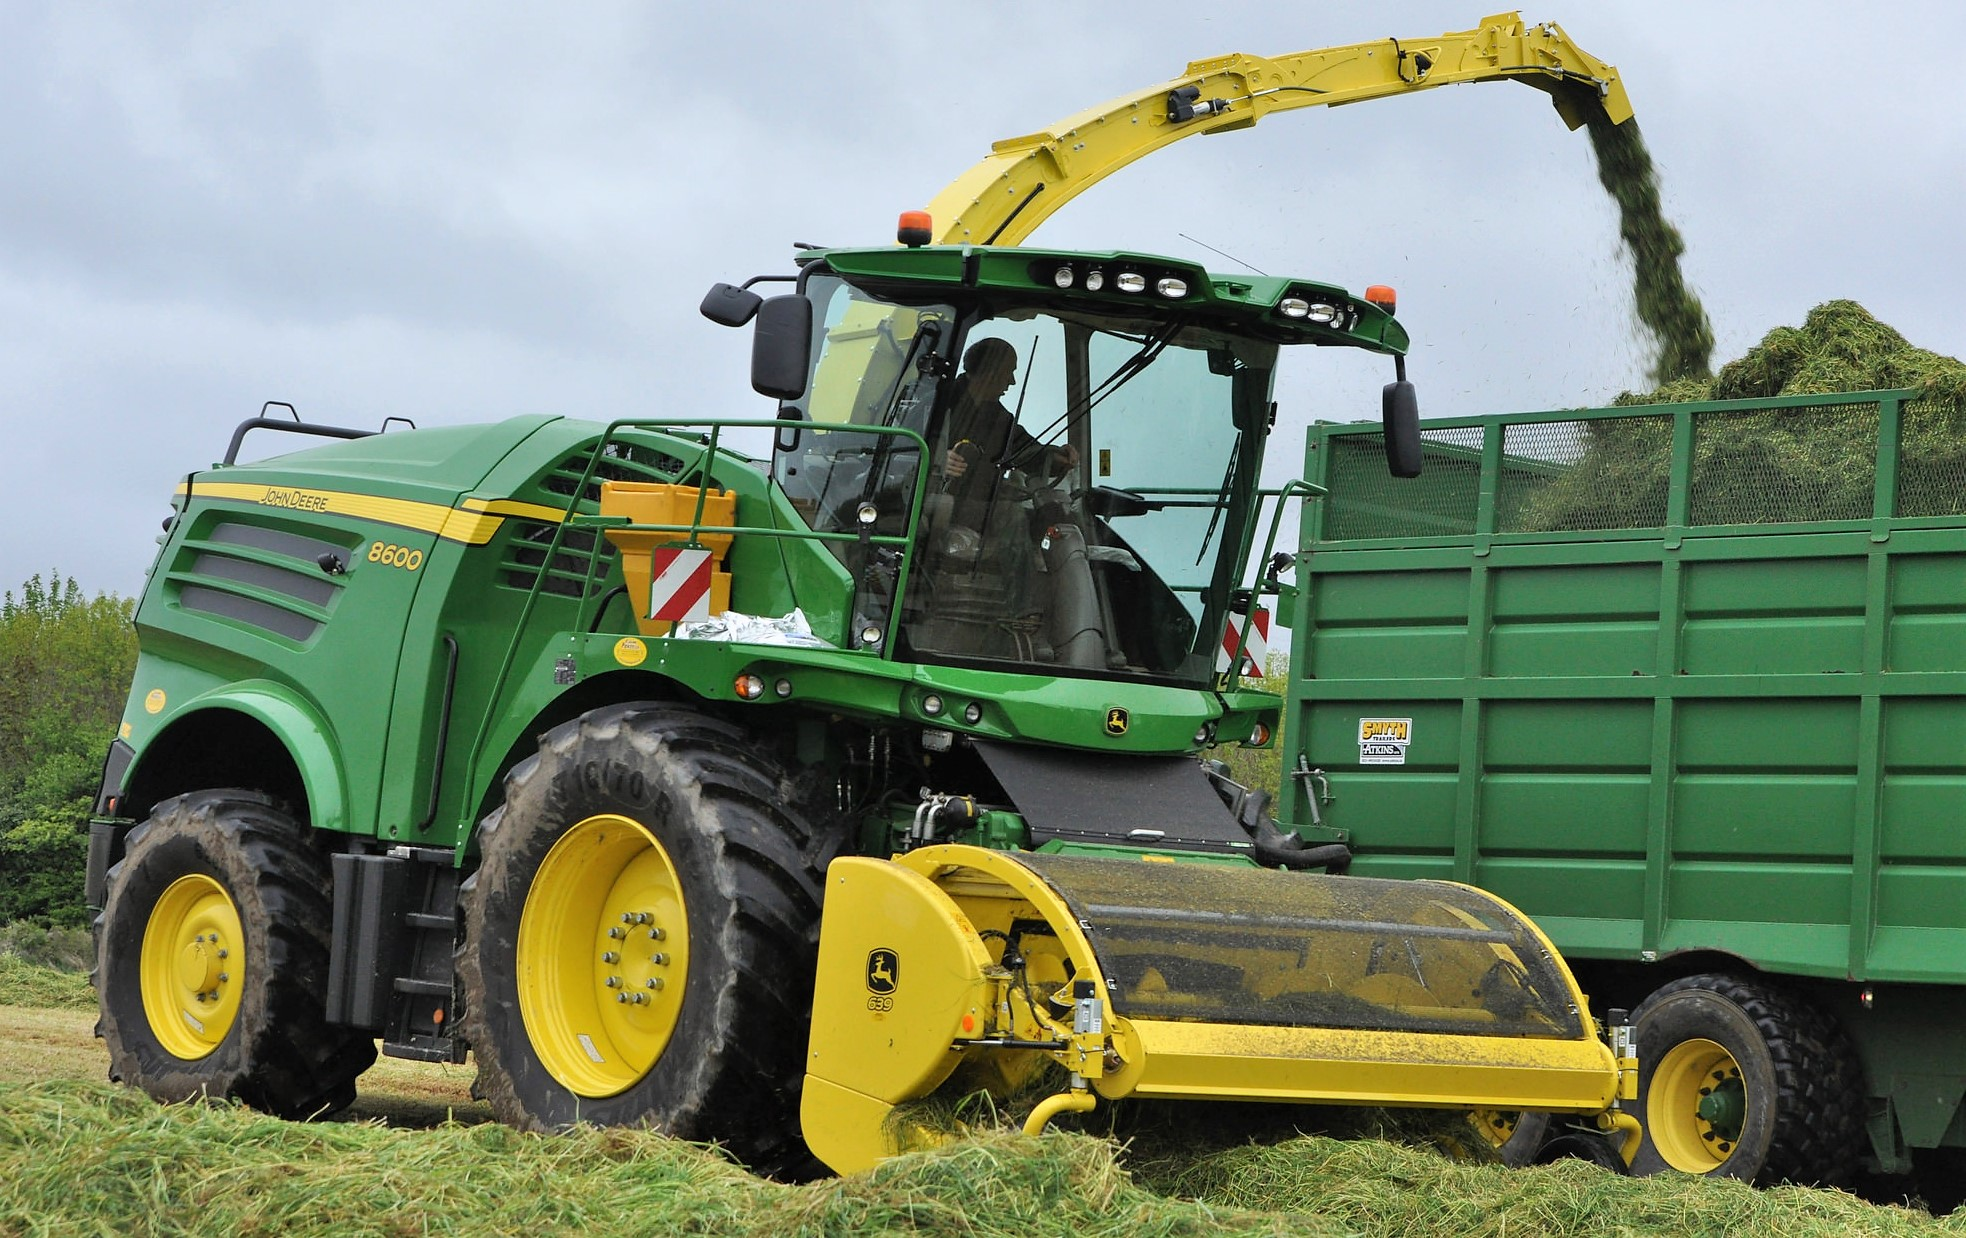 Nostalgia Where Did John Deere Self Propelled Foragers Come From Combine Box Fuse Image Source Shane Casey